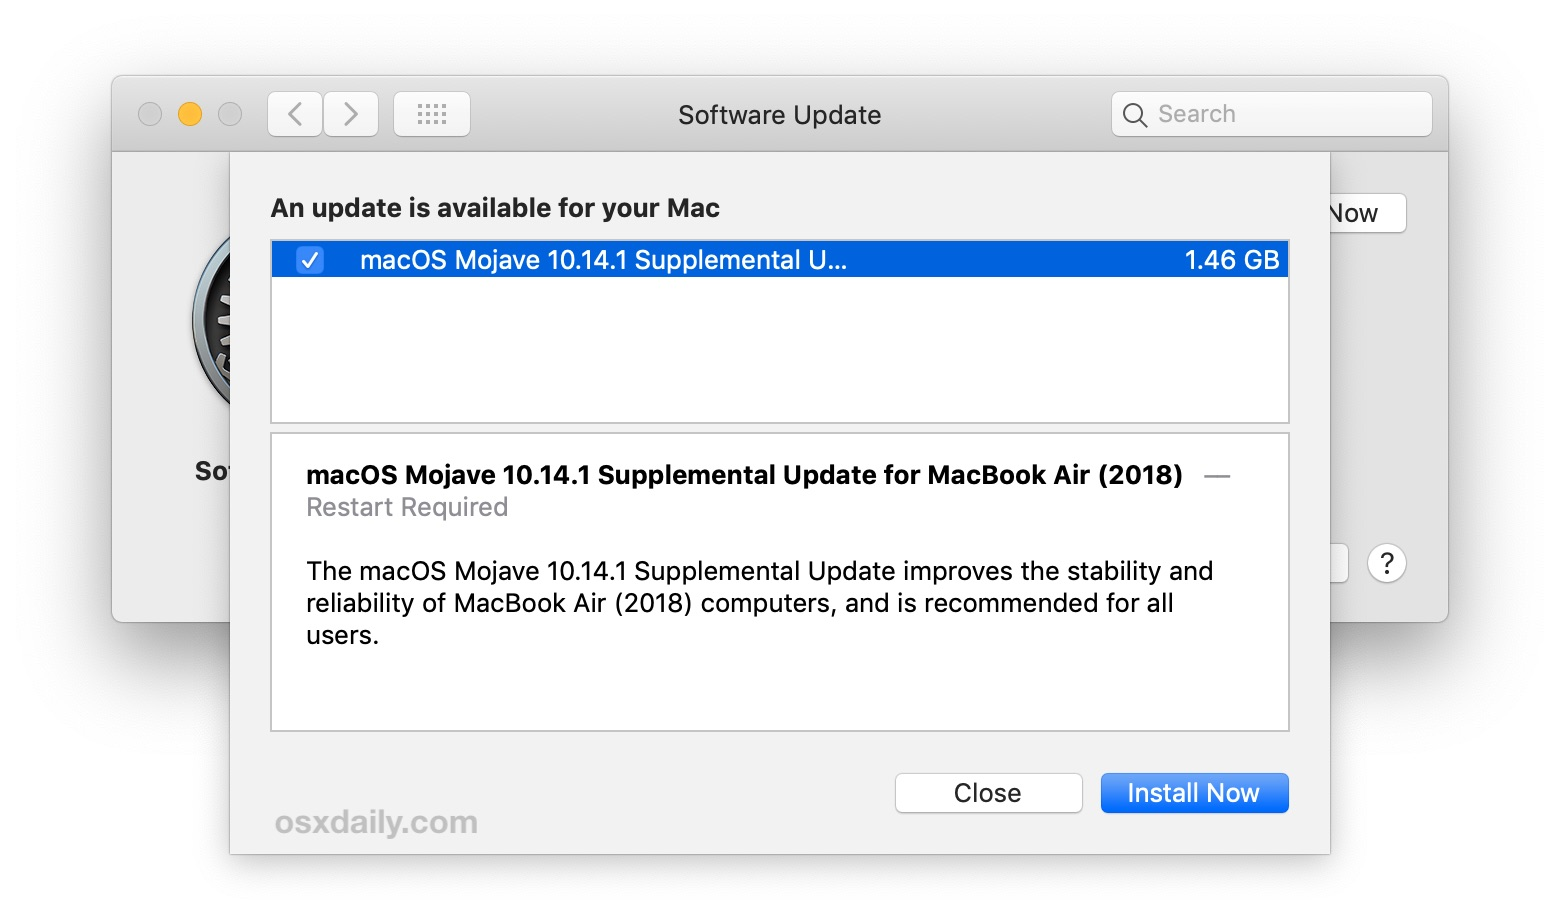 macOS Mojave 10.14.1 Supplemental Update for MacBook Air (2018)